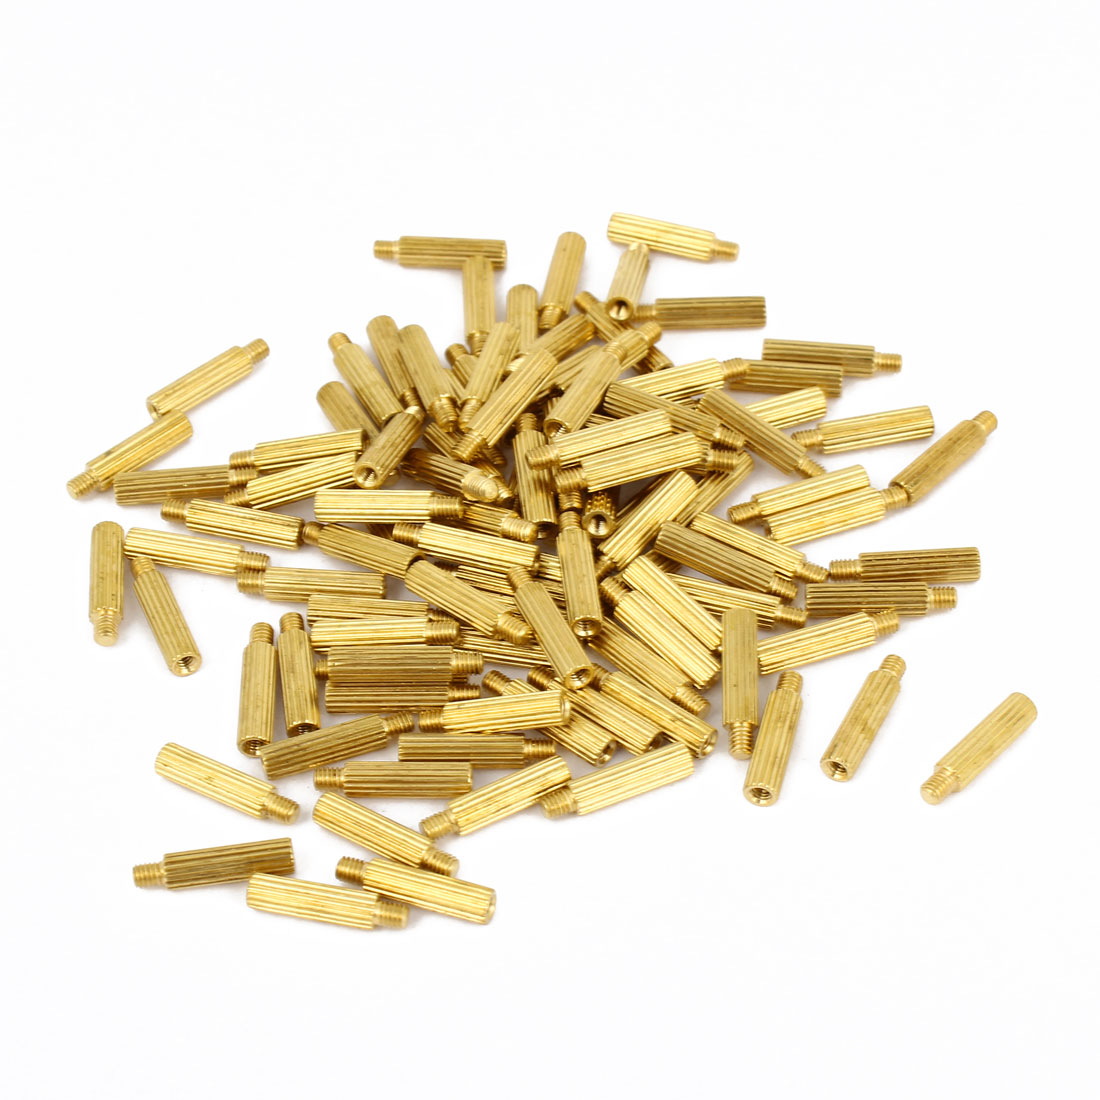 100Pcs Male to Female Thread Grooved Brass Pillars Standoff M2x12mm